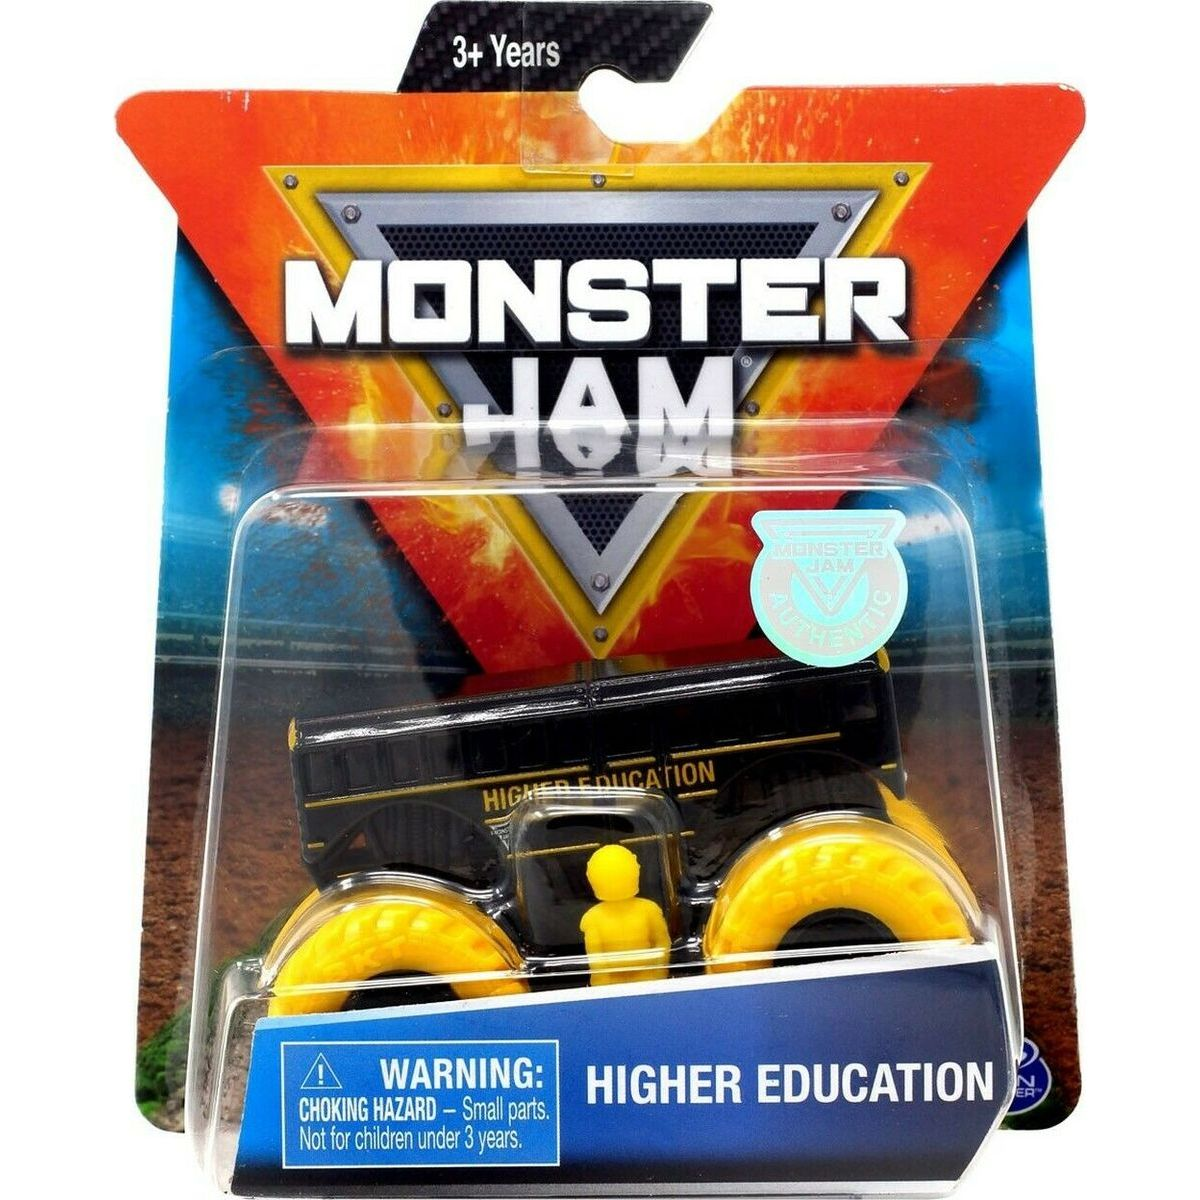 Monster Jam Sběratelská Die-Cast auta 1:64 Higher Education